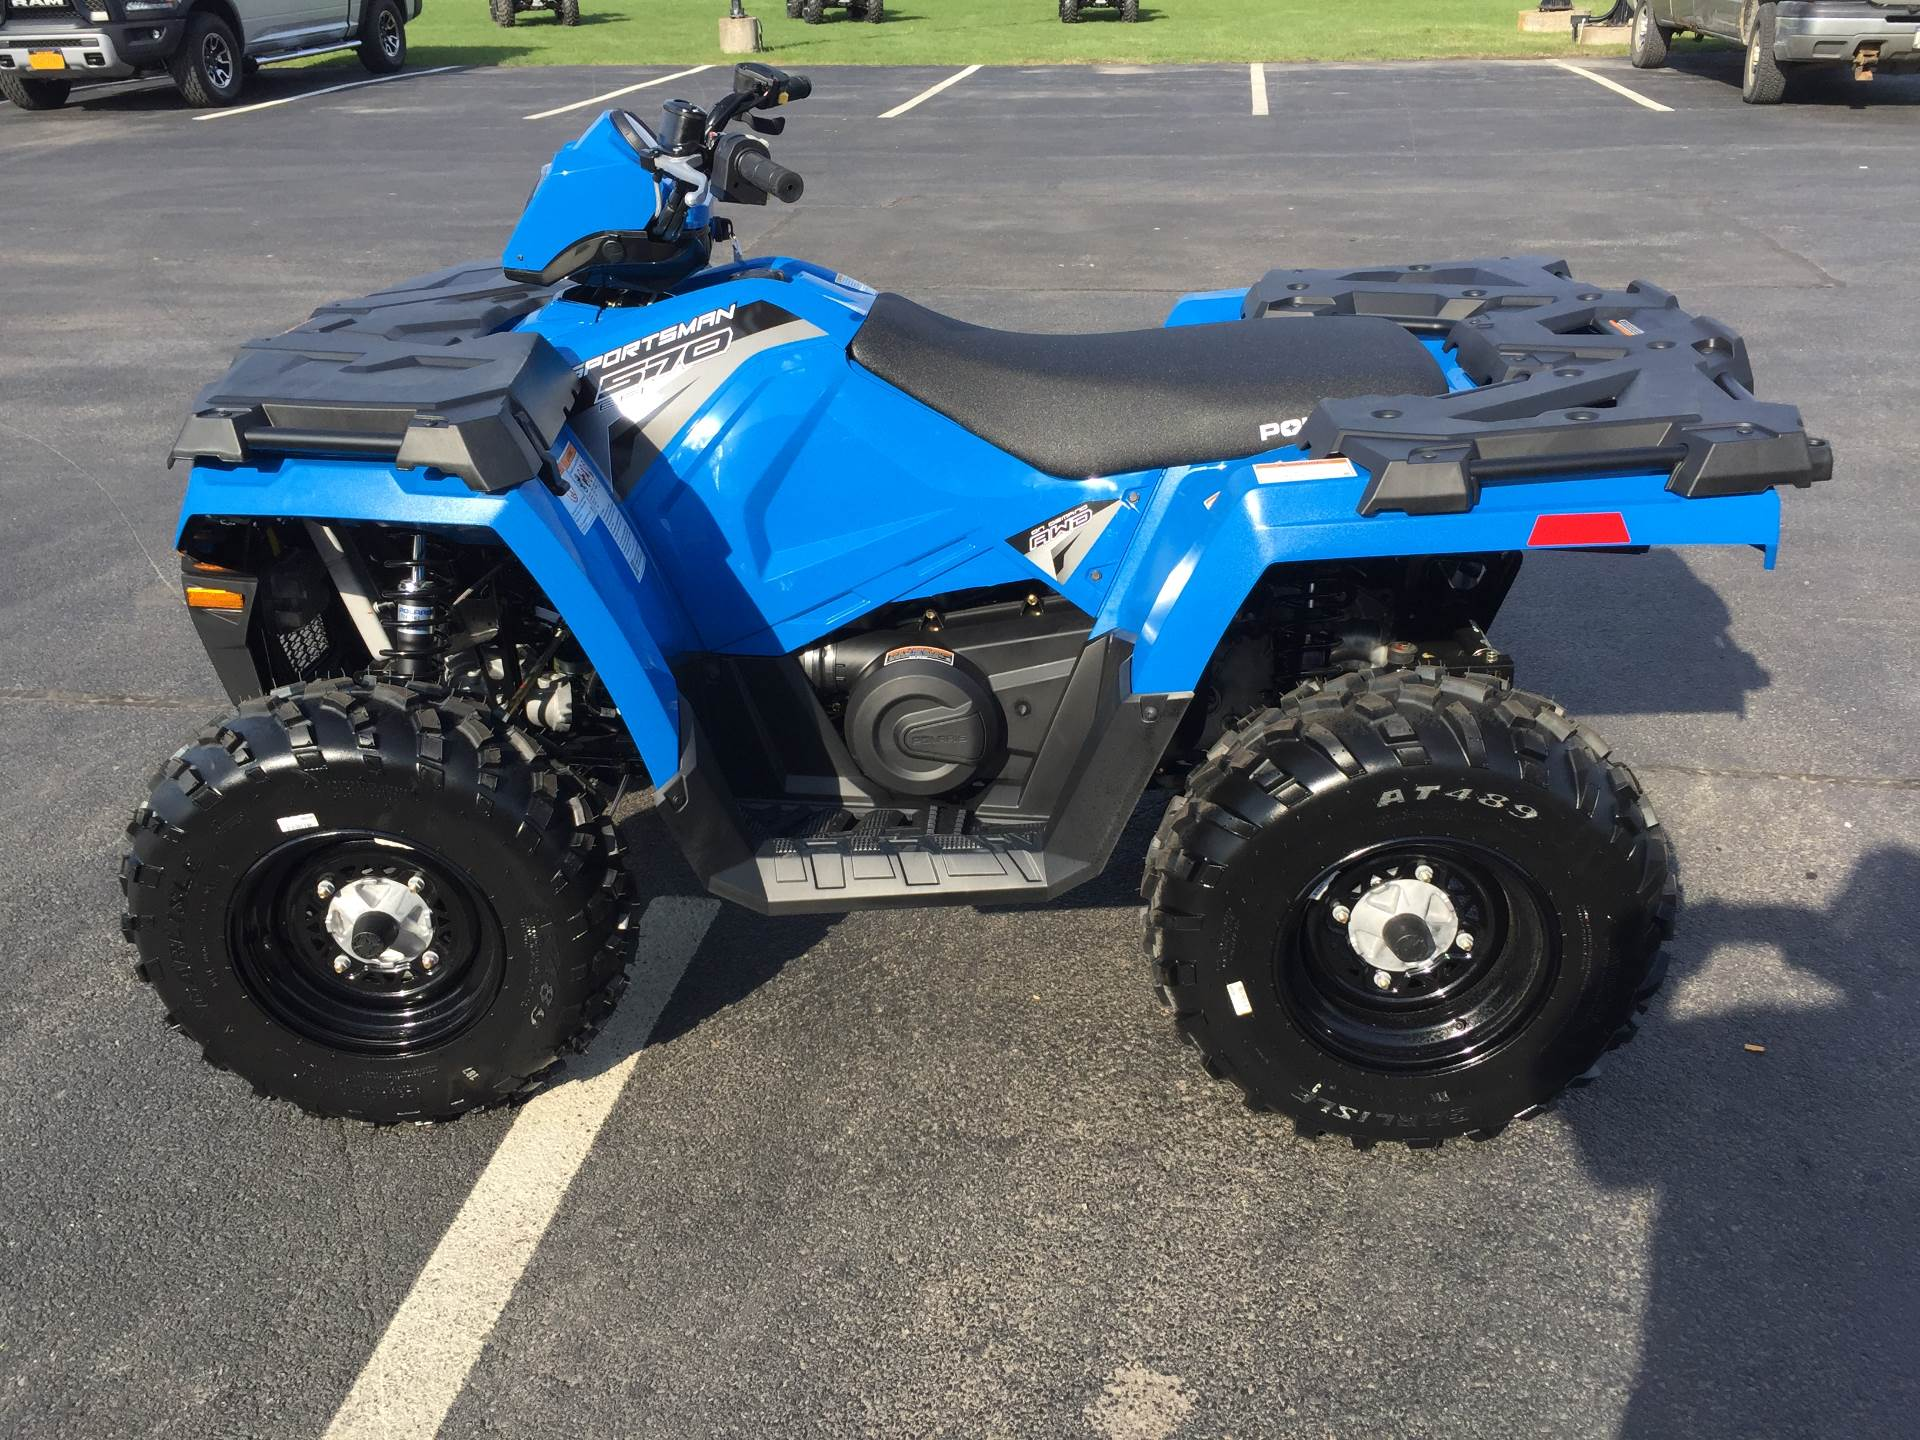 2017 Polaris Sportsman 570 in Brewerton, New York